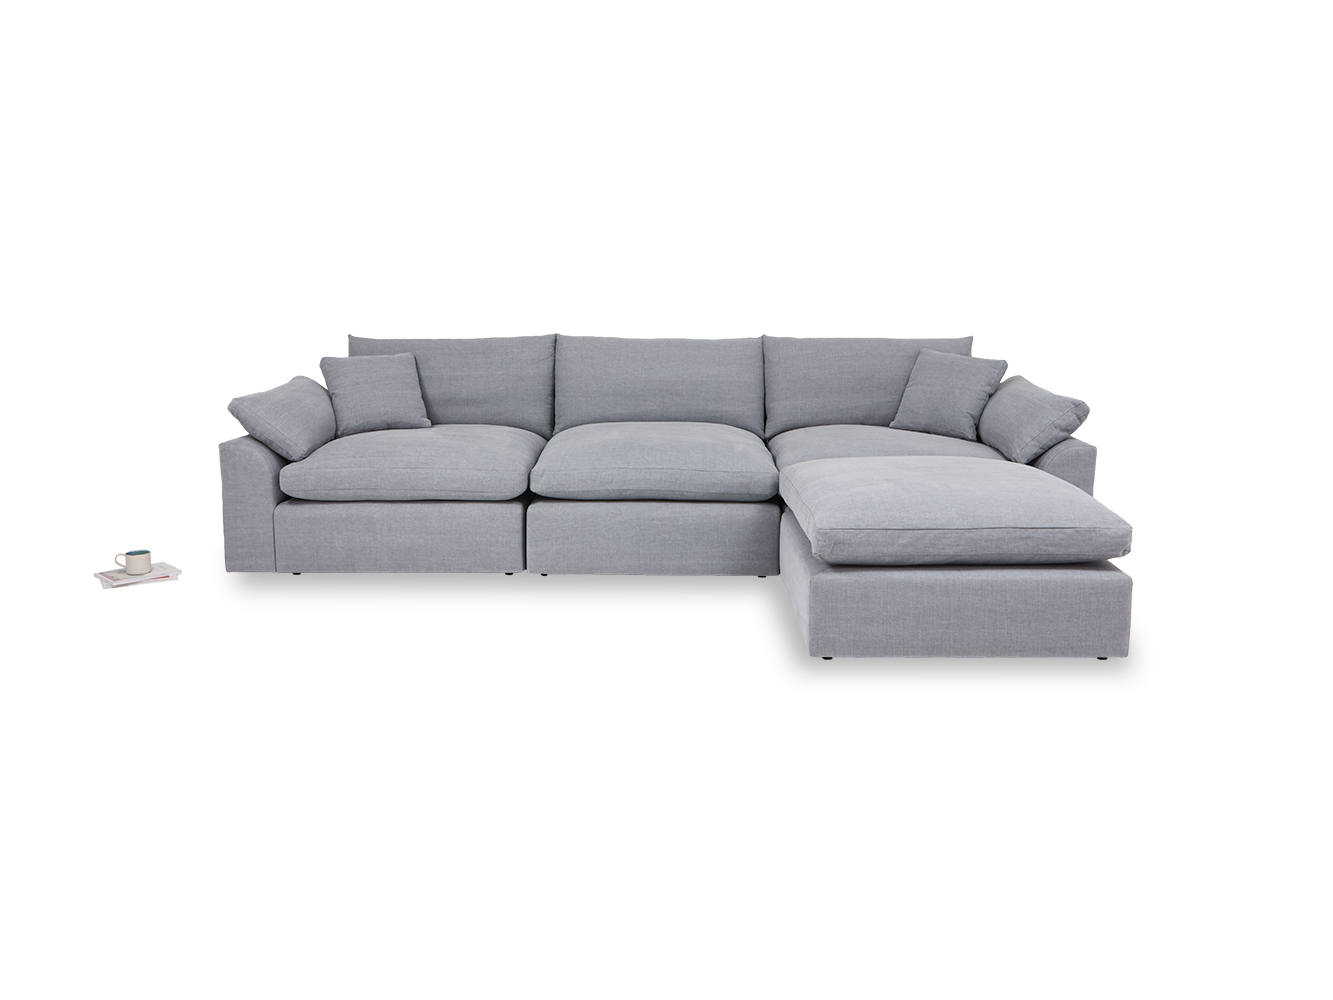 Cuddlemuffin Chaise Sofa | Chaise Sofa | Loaf